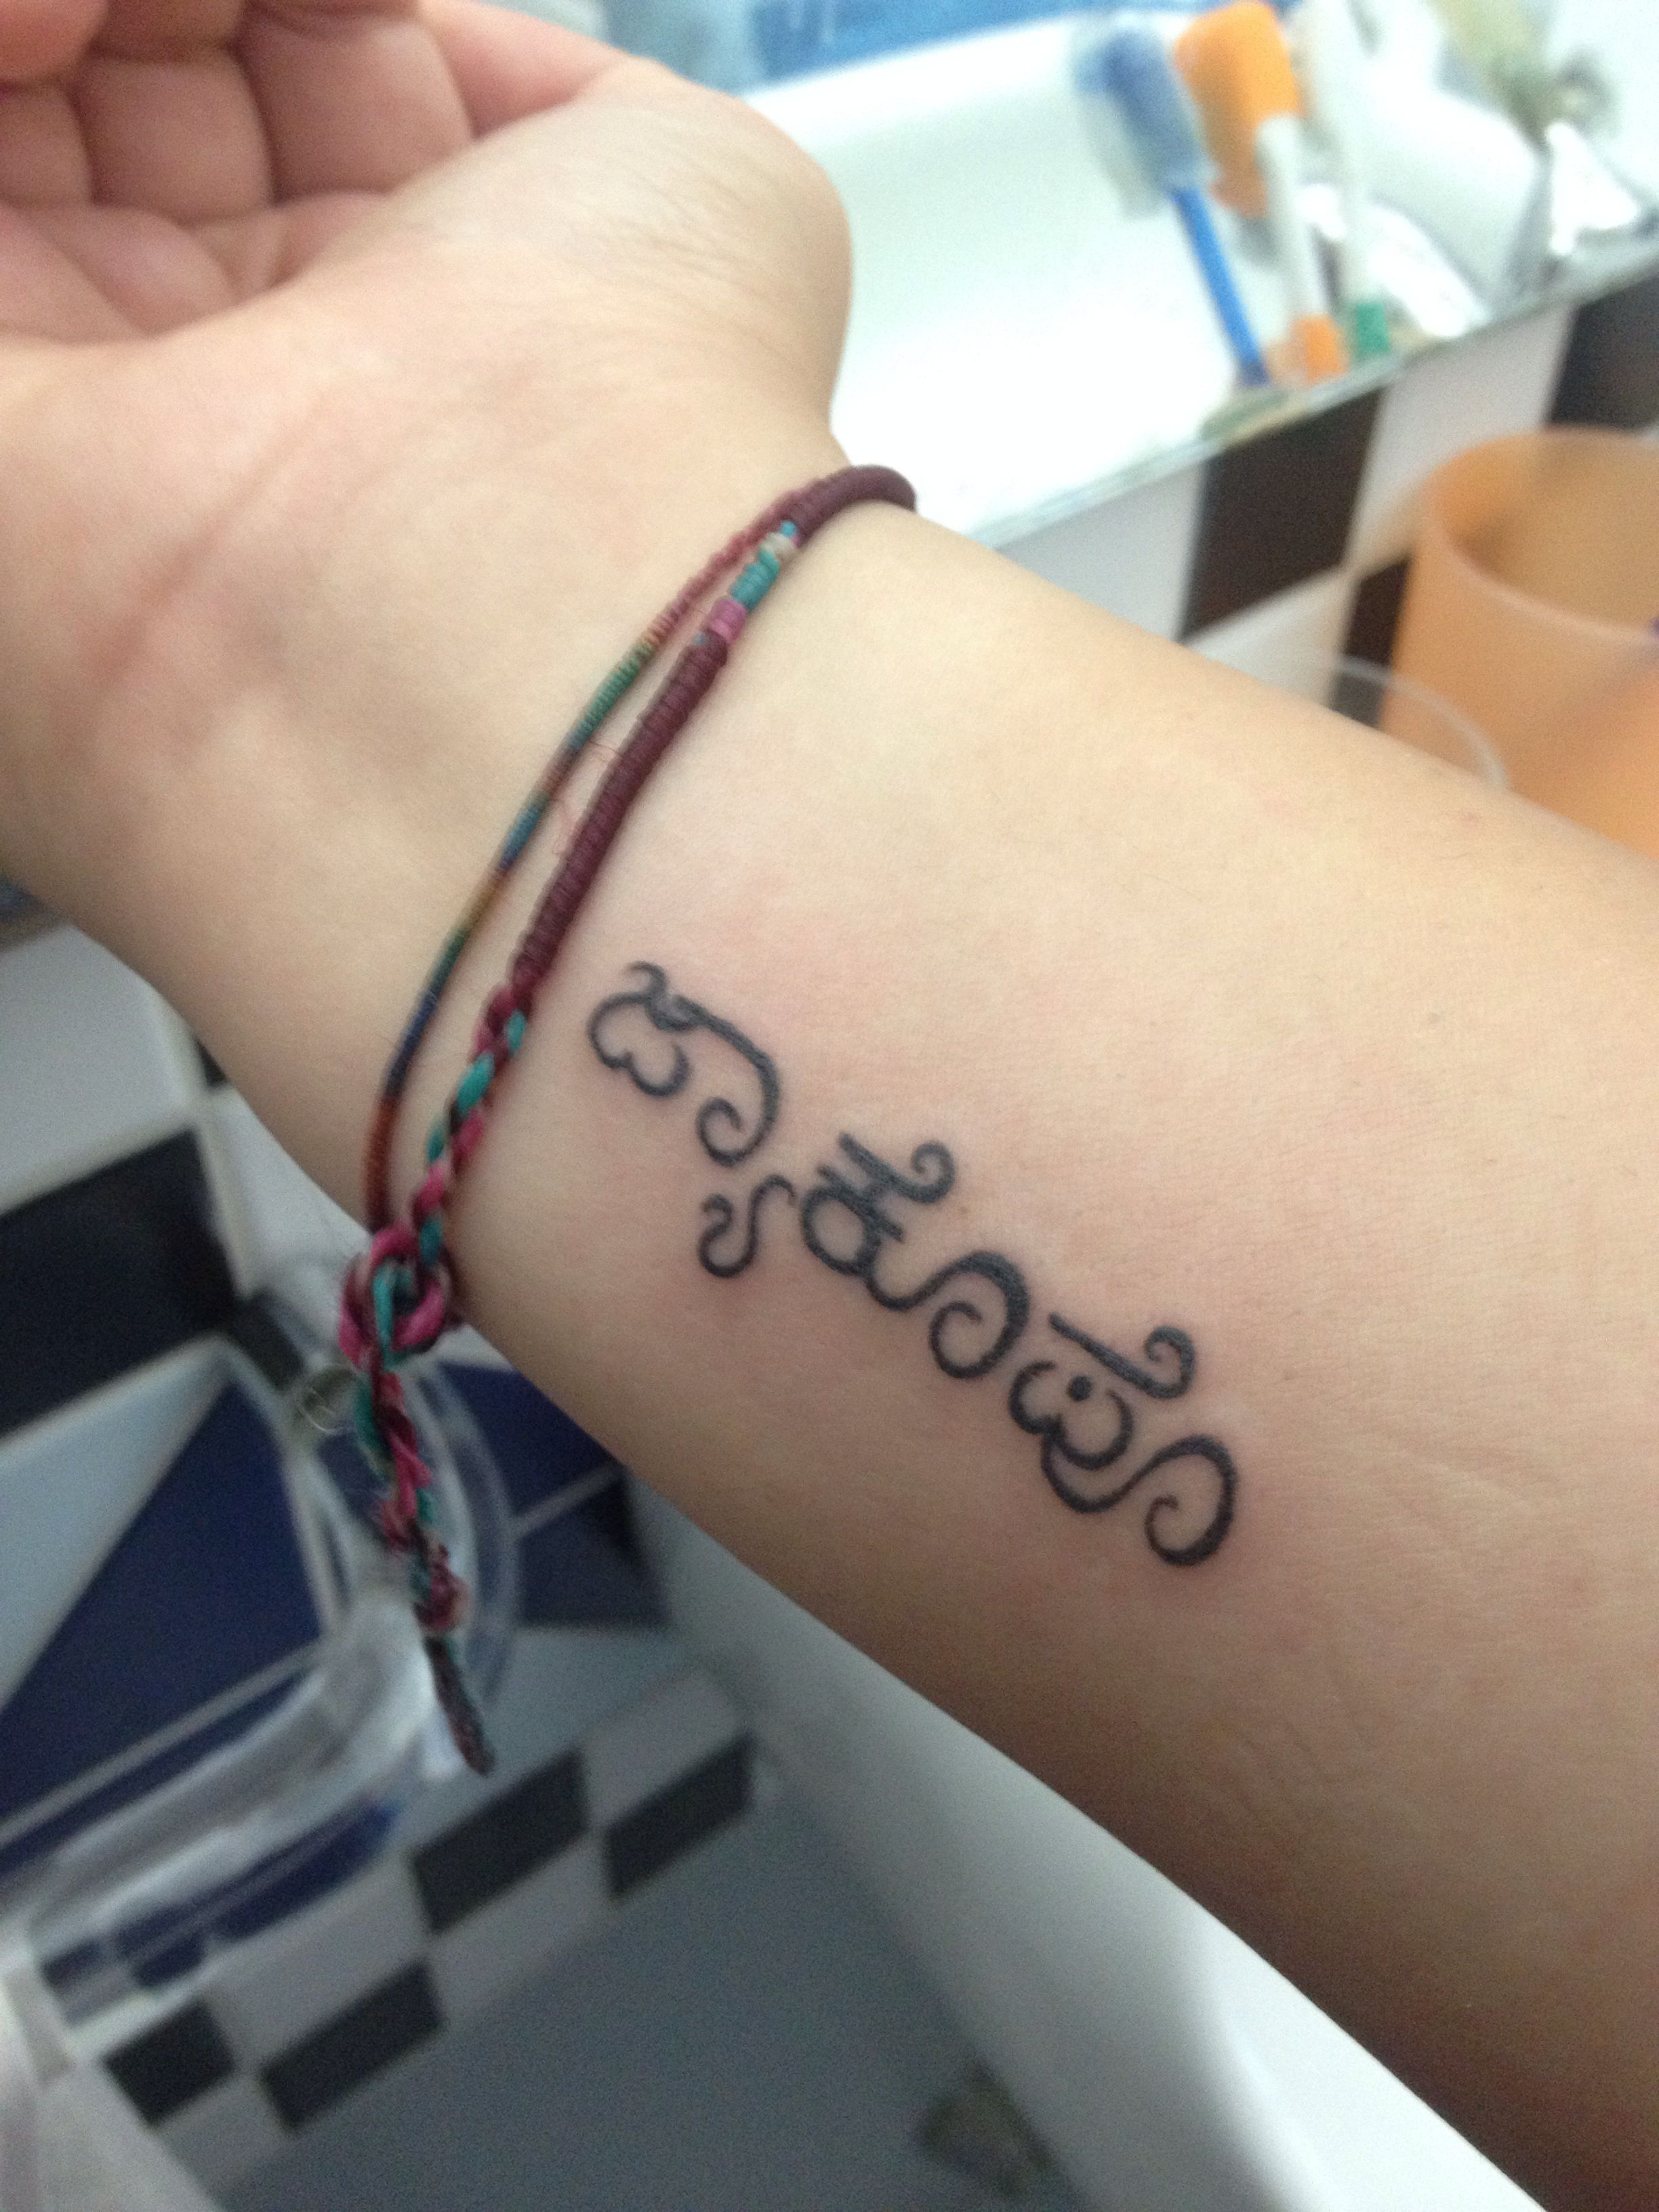 Tatuaggio In Kannada Kannada Tattoo Tattoos Tattoo Quotes